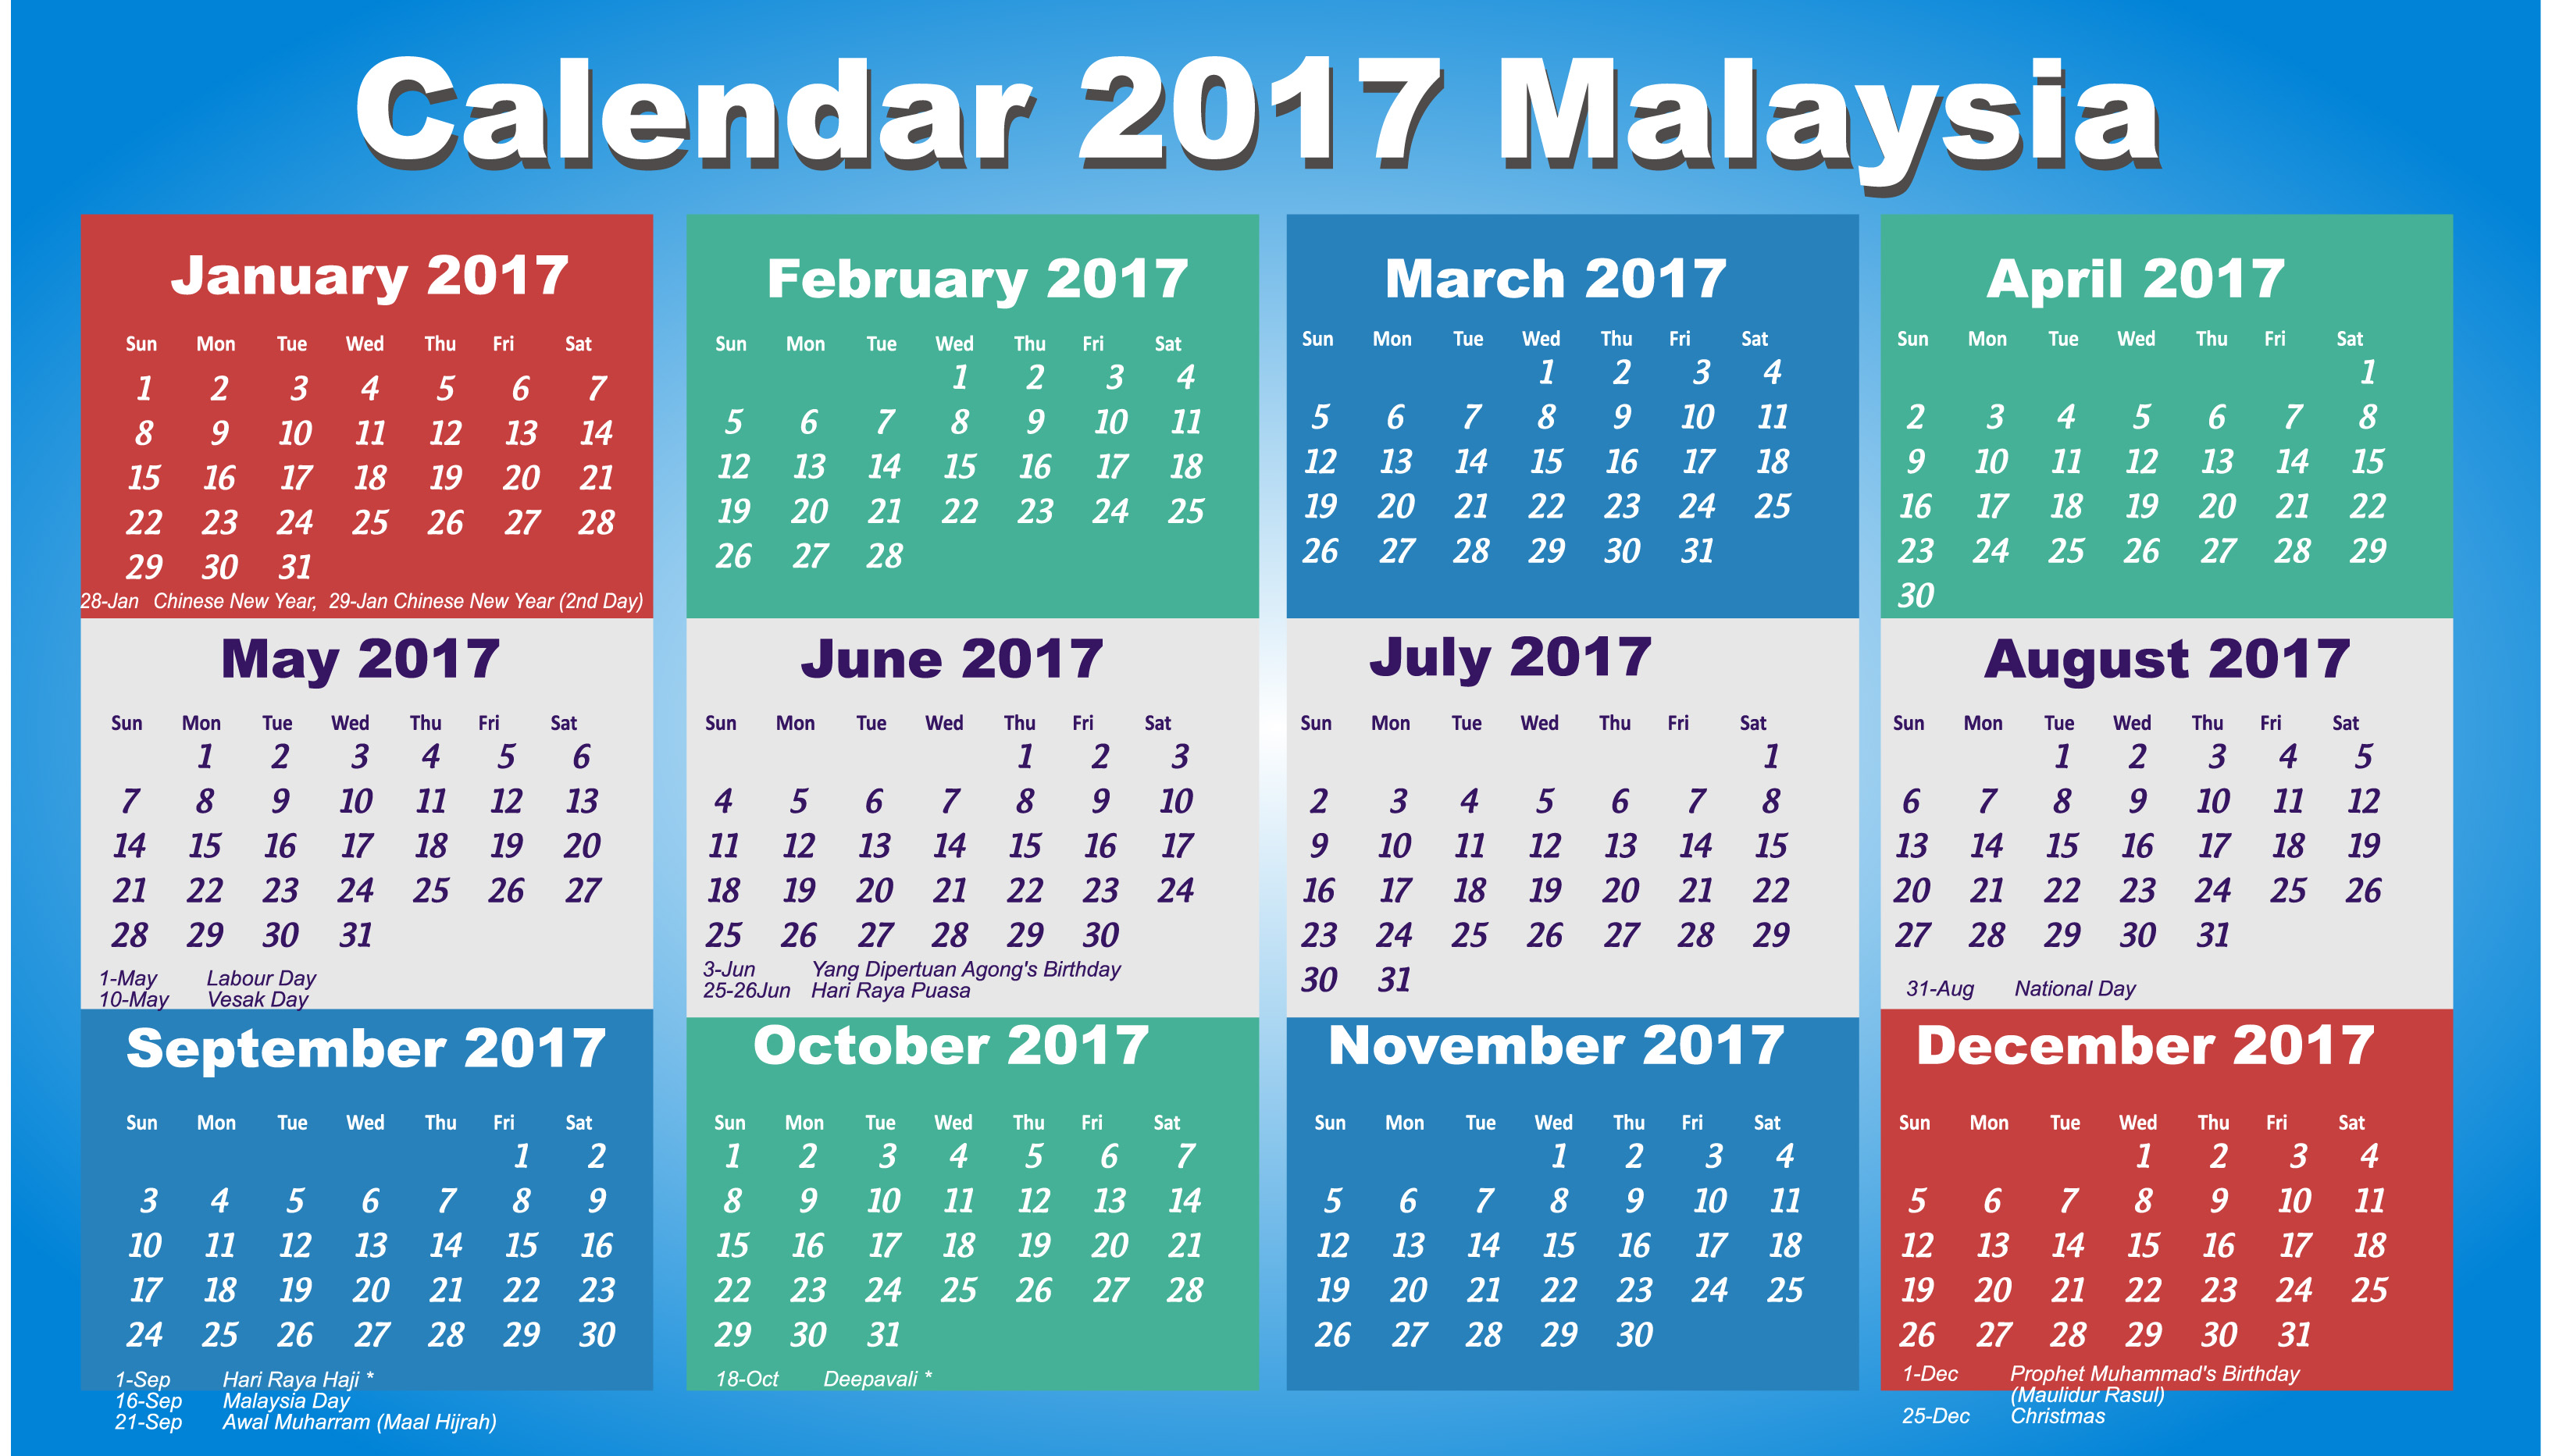 April 2017 Calendar with Holidays Malaysia